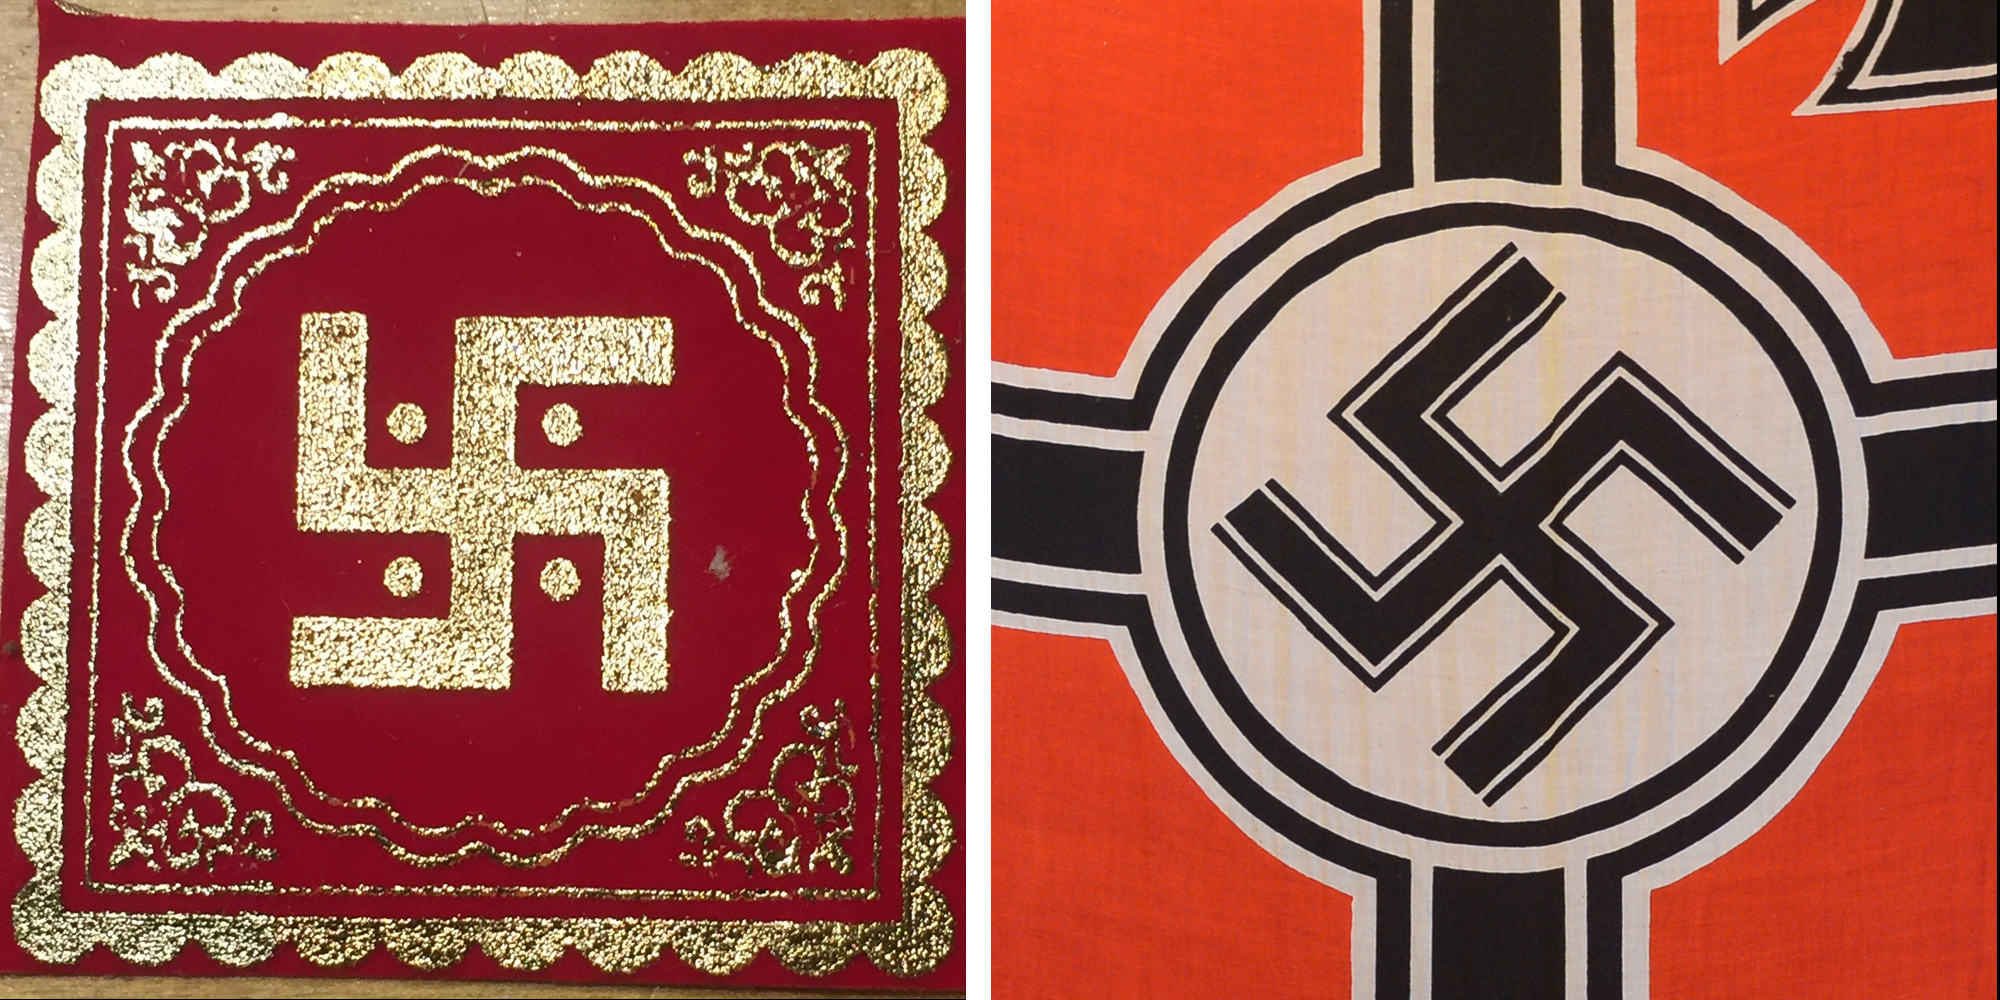 (Left) The Hindu swastika. (Right) A Nazi flag hangs in a Nazi-themed cafe in Bandung, Indonesia in 2013. Courtesy of Bela Shah and Adek Berry/AFP/Getty Images